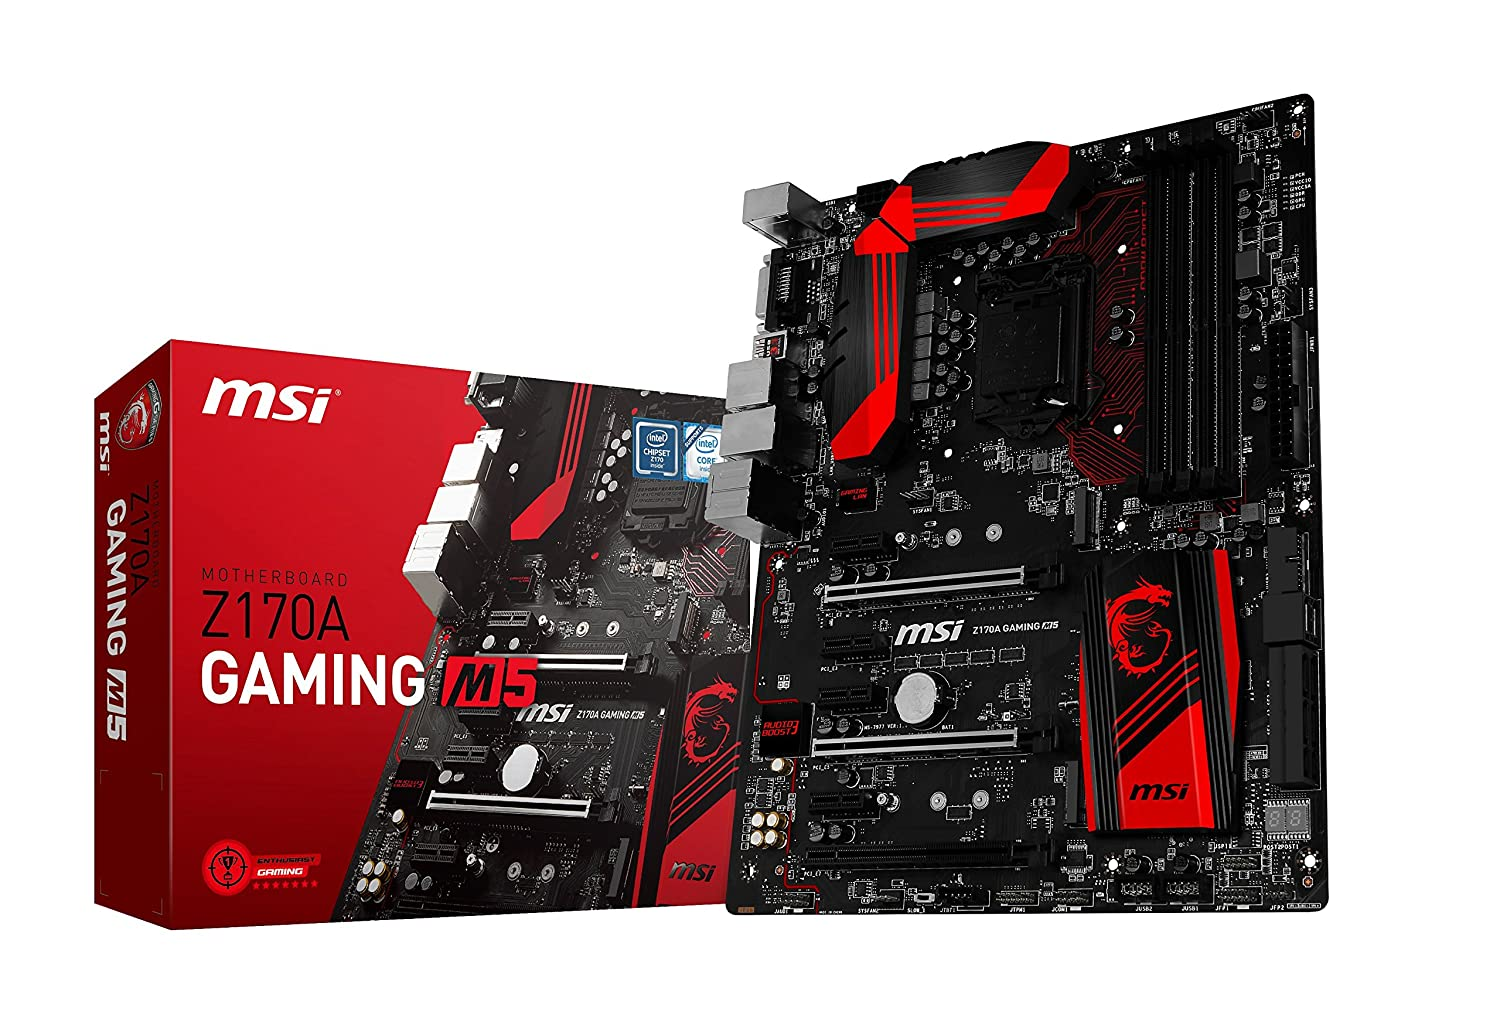 MSI Scheda madre Z170A GAMING M5